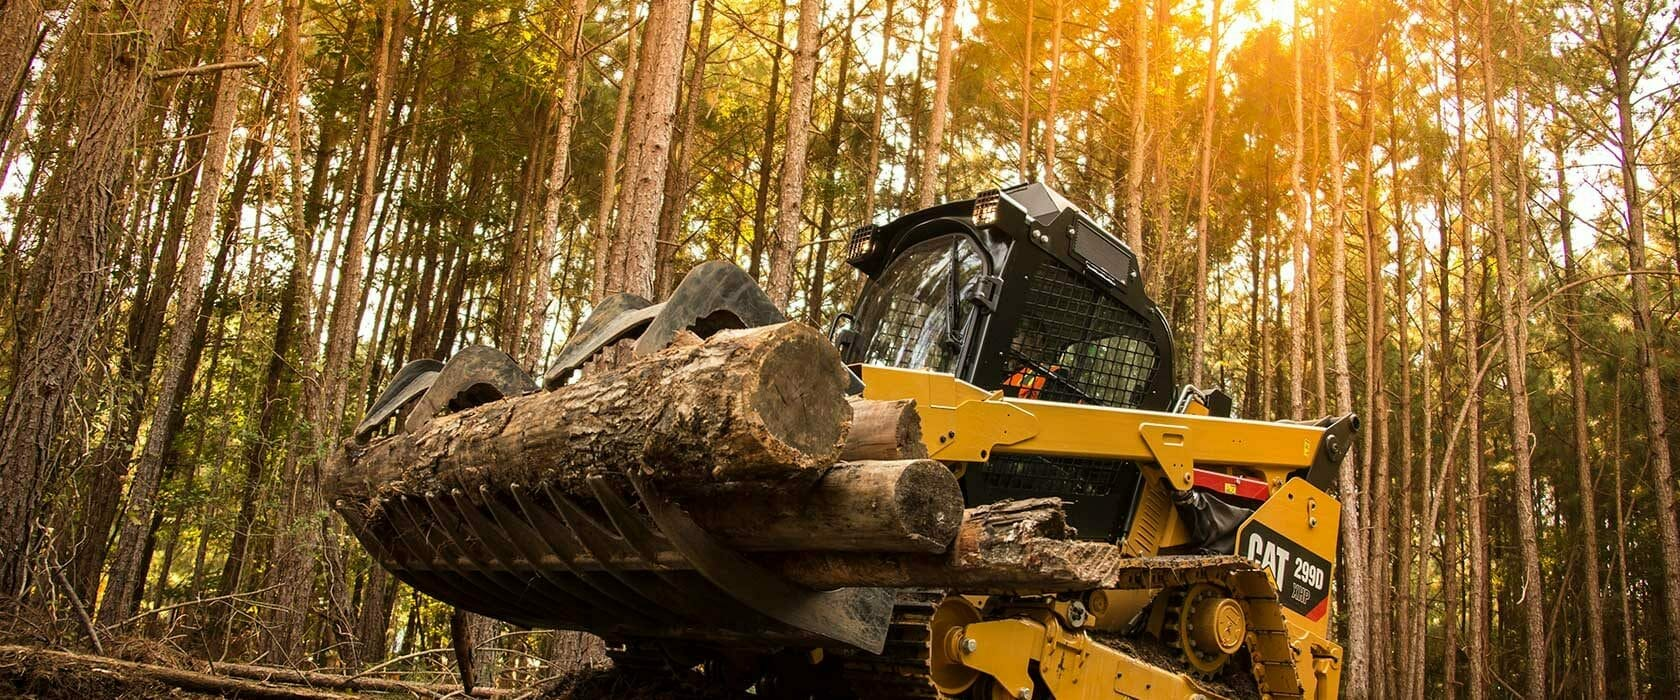 Cat Skid Steer in Forest